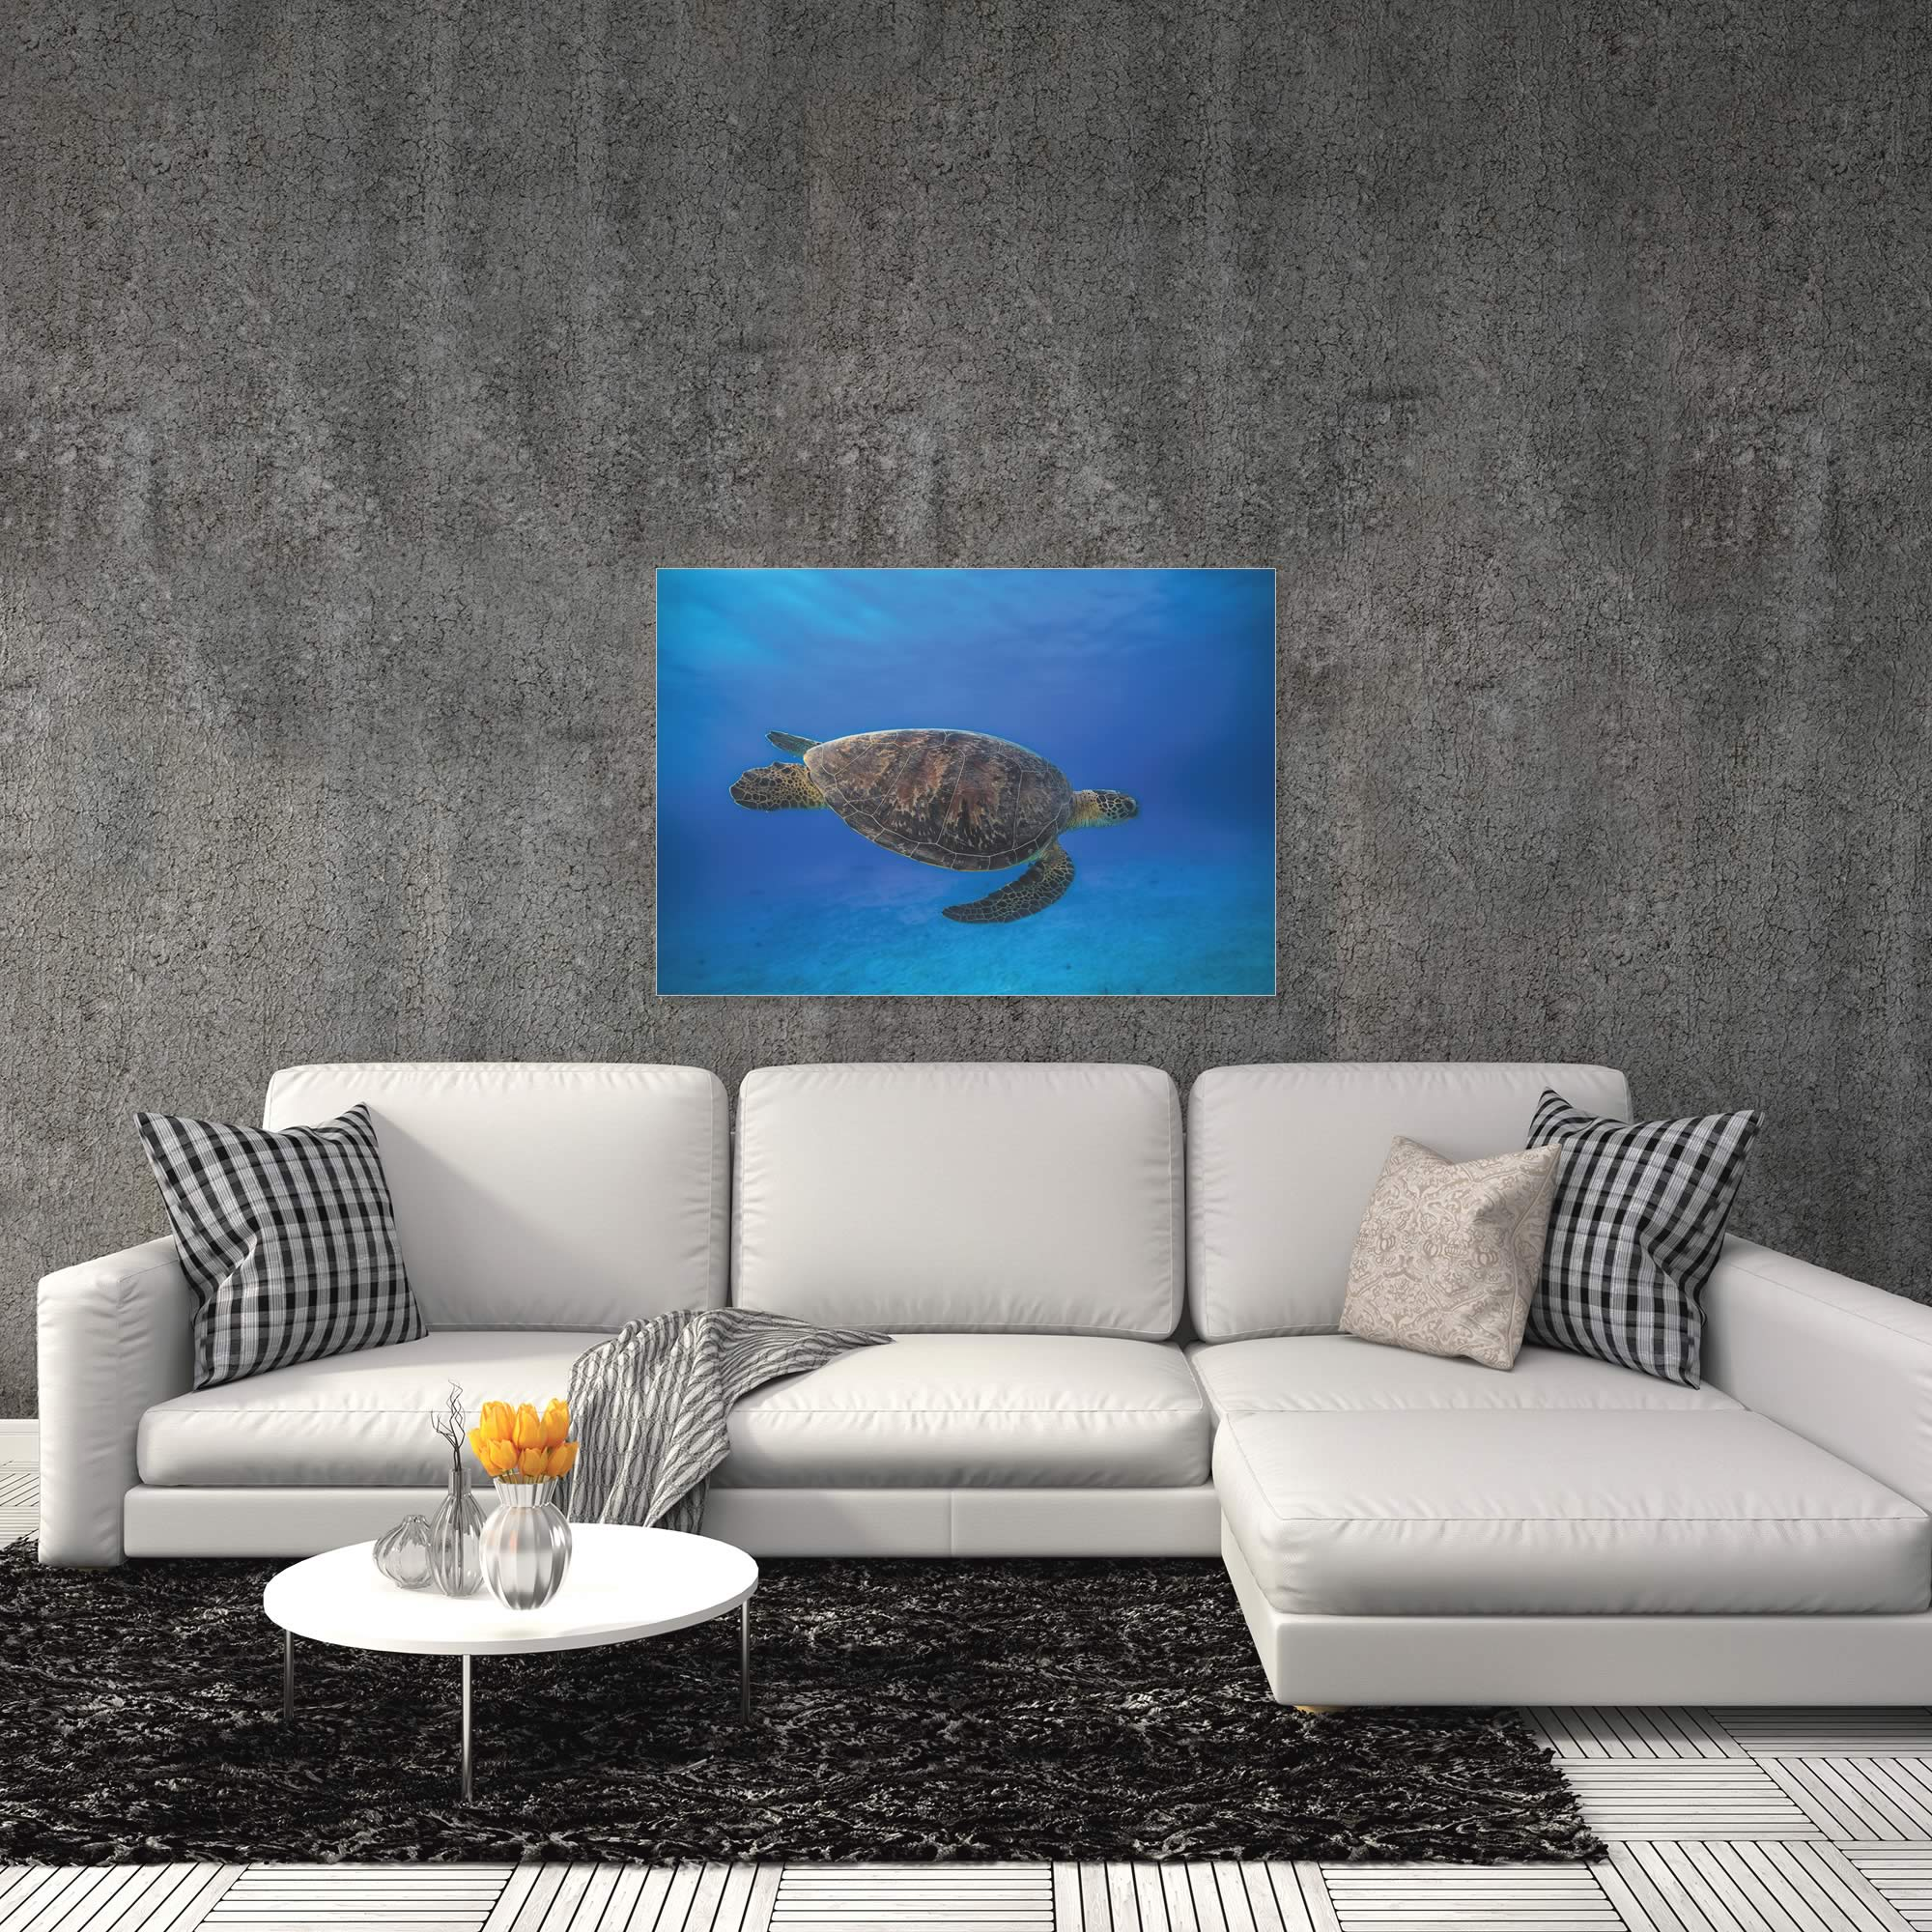 Green Turtle in the Blue by Barathieu Gabriel - Sea Turtle Art on Metal or Acrylic - Alternate View 1